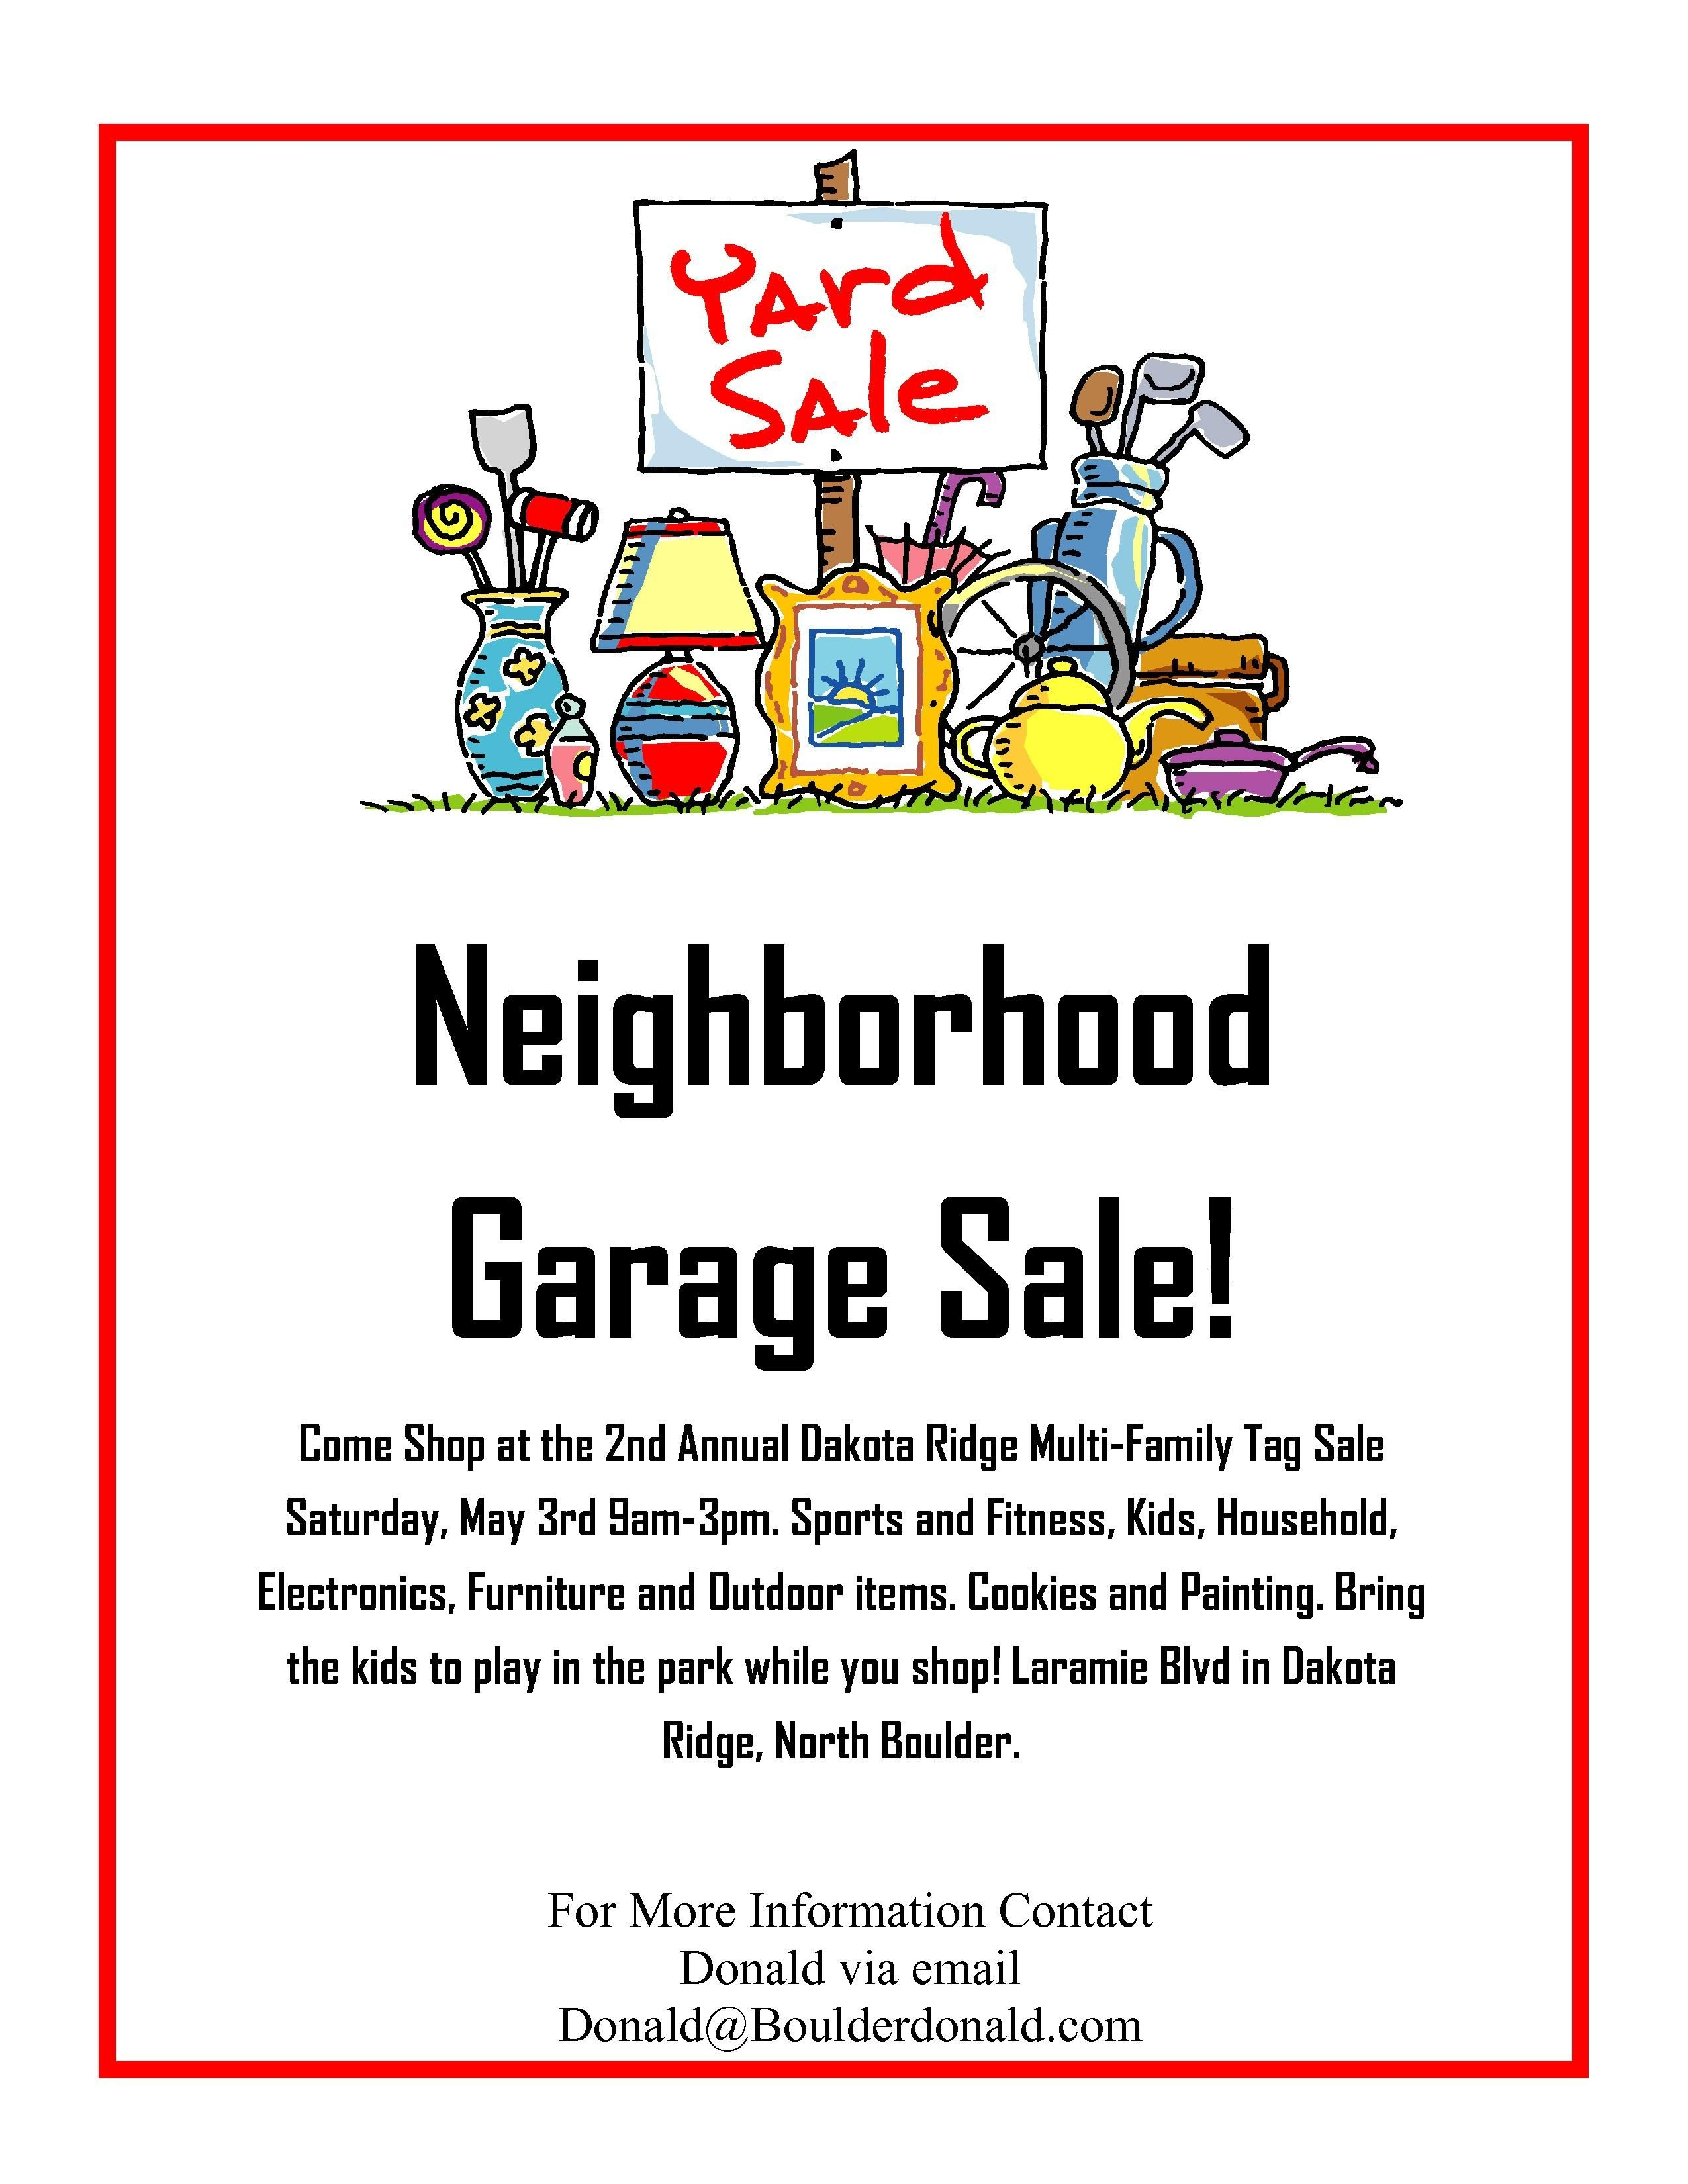 008 Yard Sale Signs Templates Template Amazing Ideas Free Printable - Free Printable Signs Templates